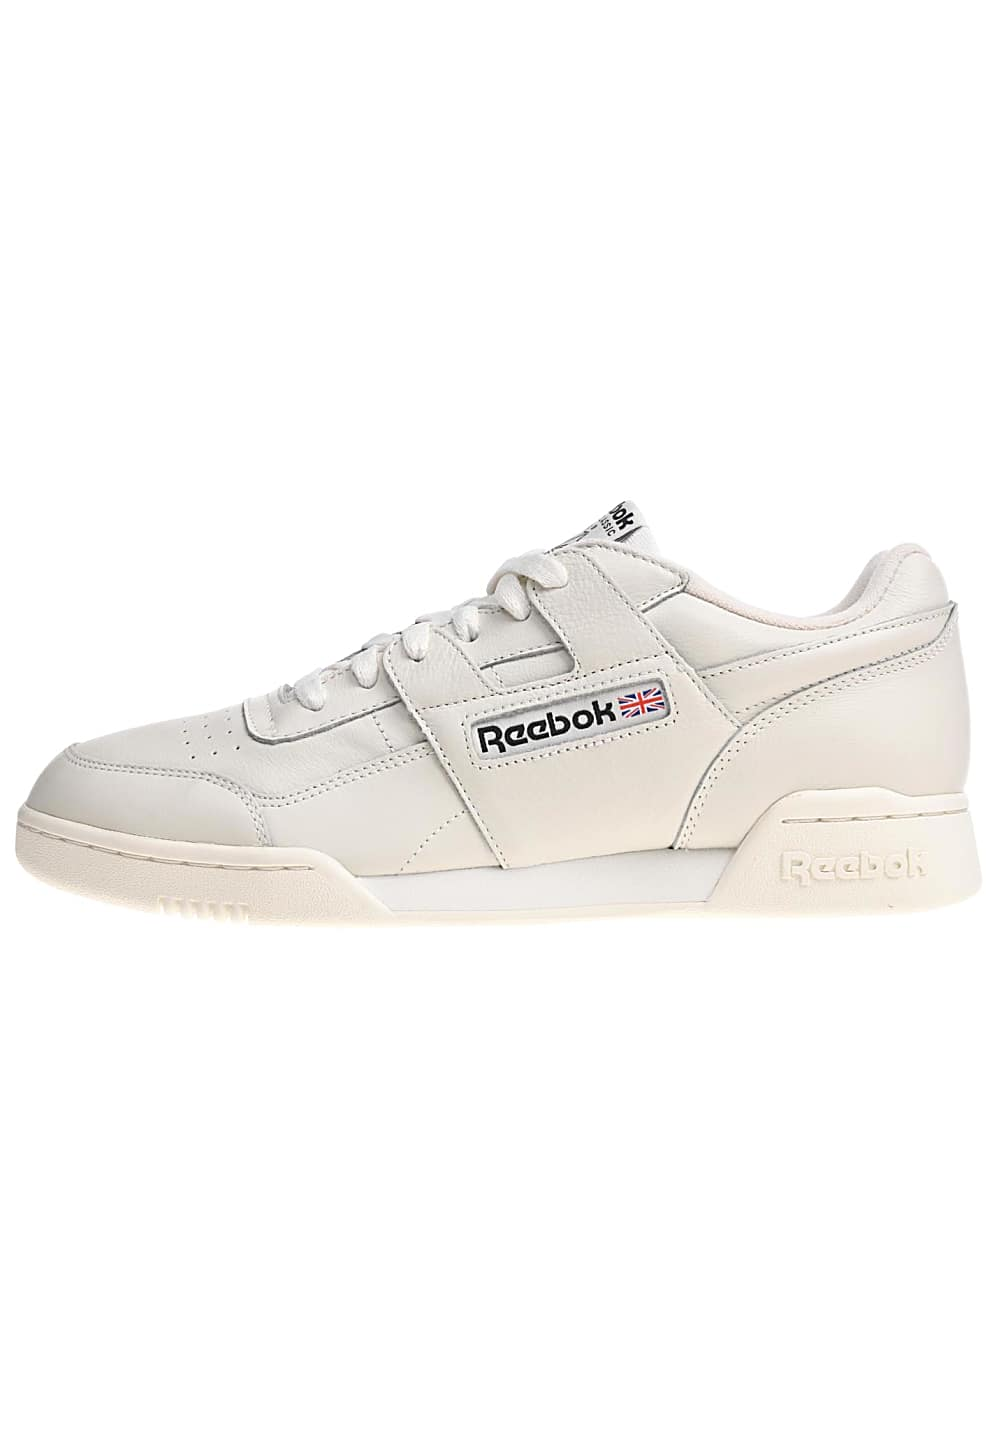 ee5bc756c4bc Reebok Workout Plus Mu - Sneakers for Men - Beige - Planet Sports